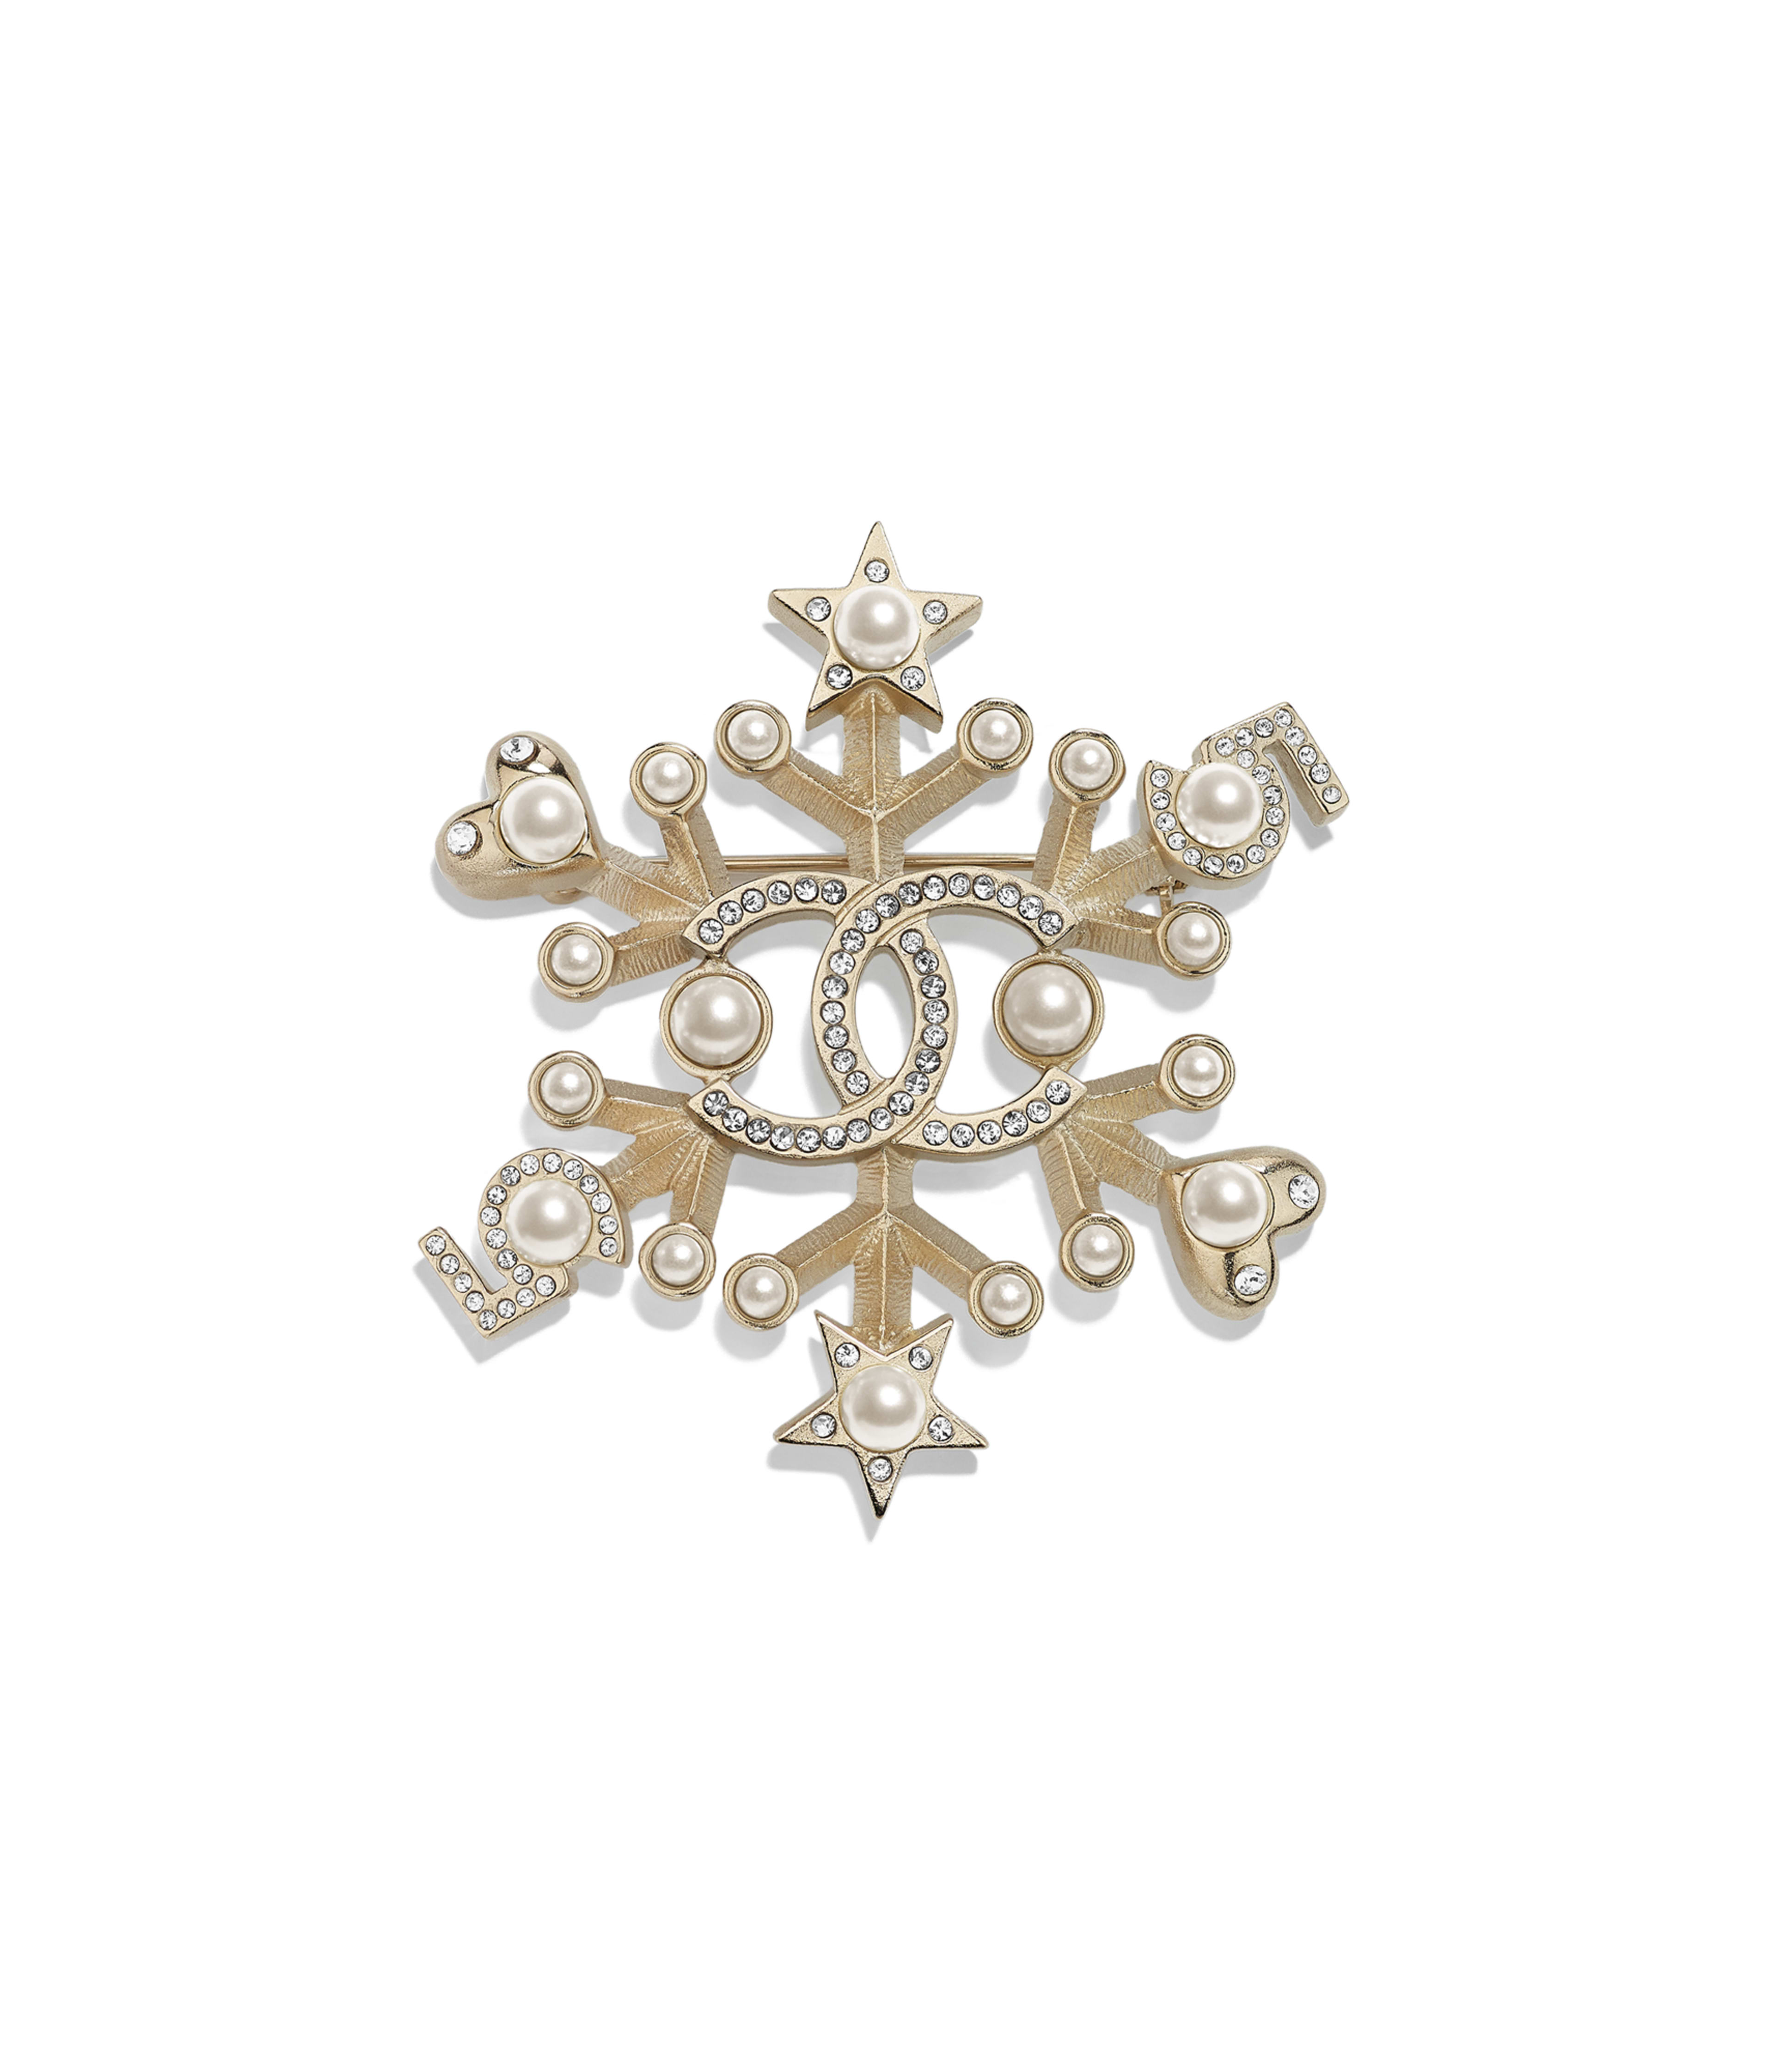 8a9778af652 Brooch Metal, Glass Pearls & Strass, Gold, Pearly White & Crystal Ref.  AB2343Y47799Z2953